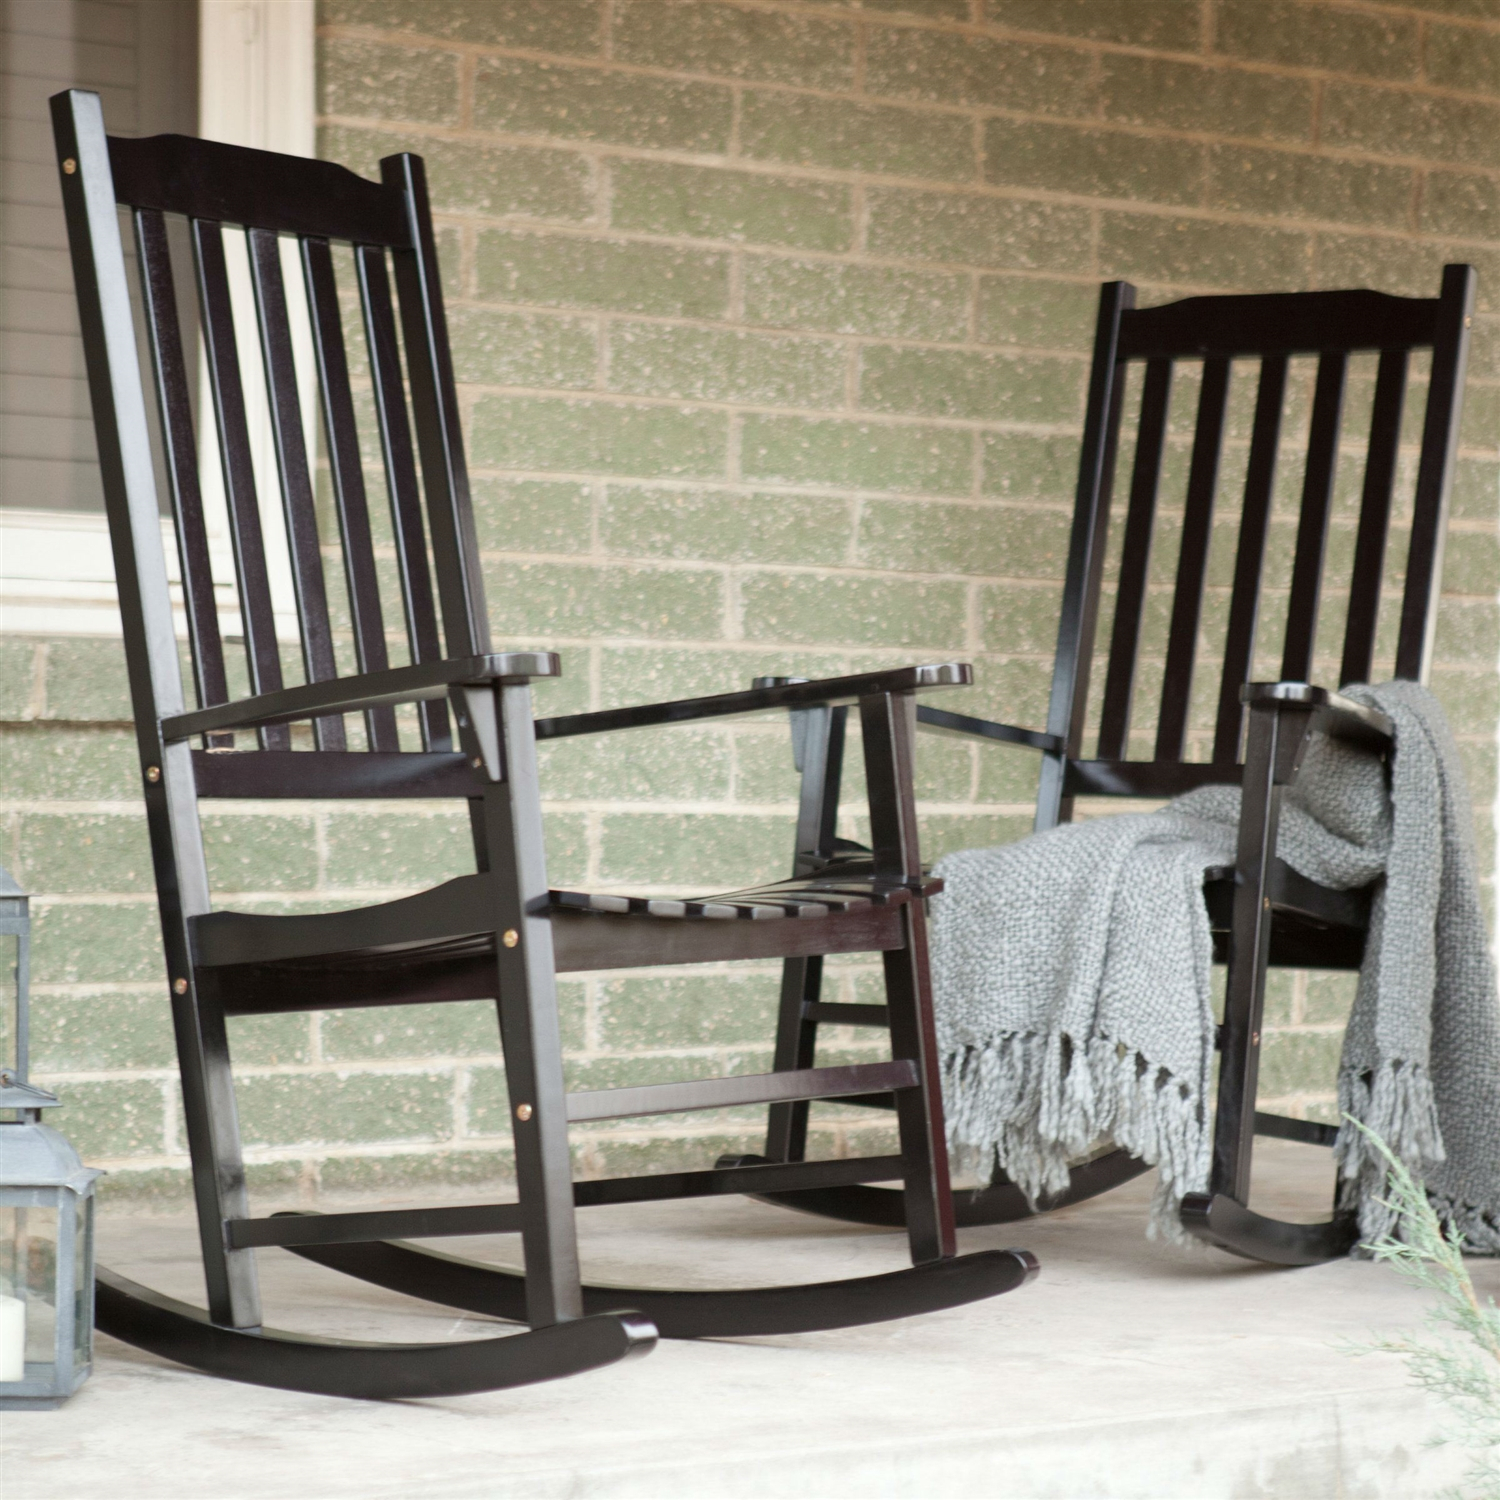 Set Of 2 – Indoor/outdoor Patio Porch Black Slat Rocking Chairs Throughout Indoor / Outdoor Porch Slat Rocking Chairs (#19 of 20)